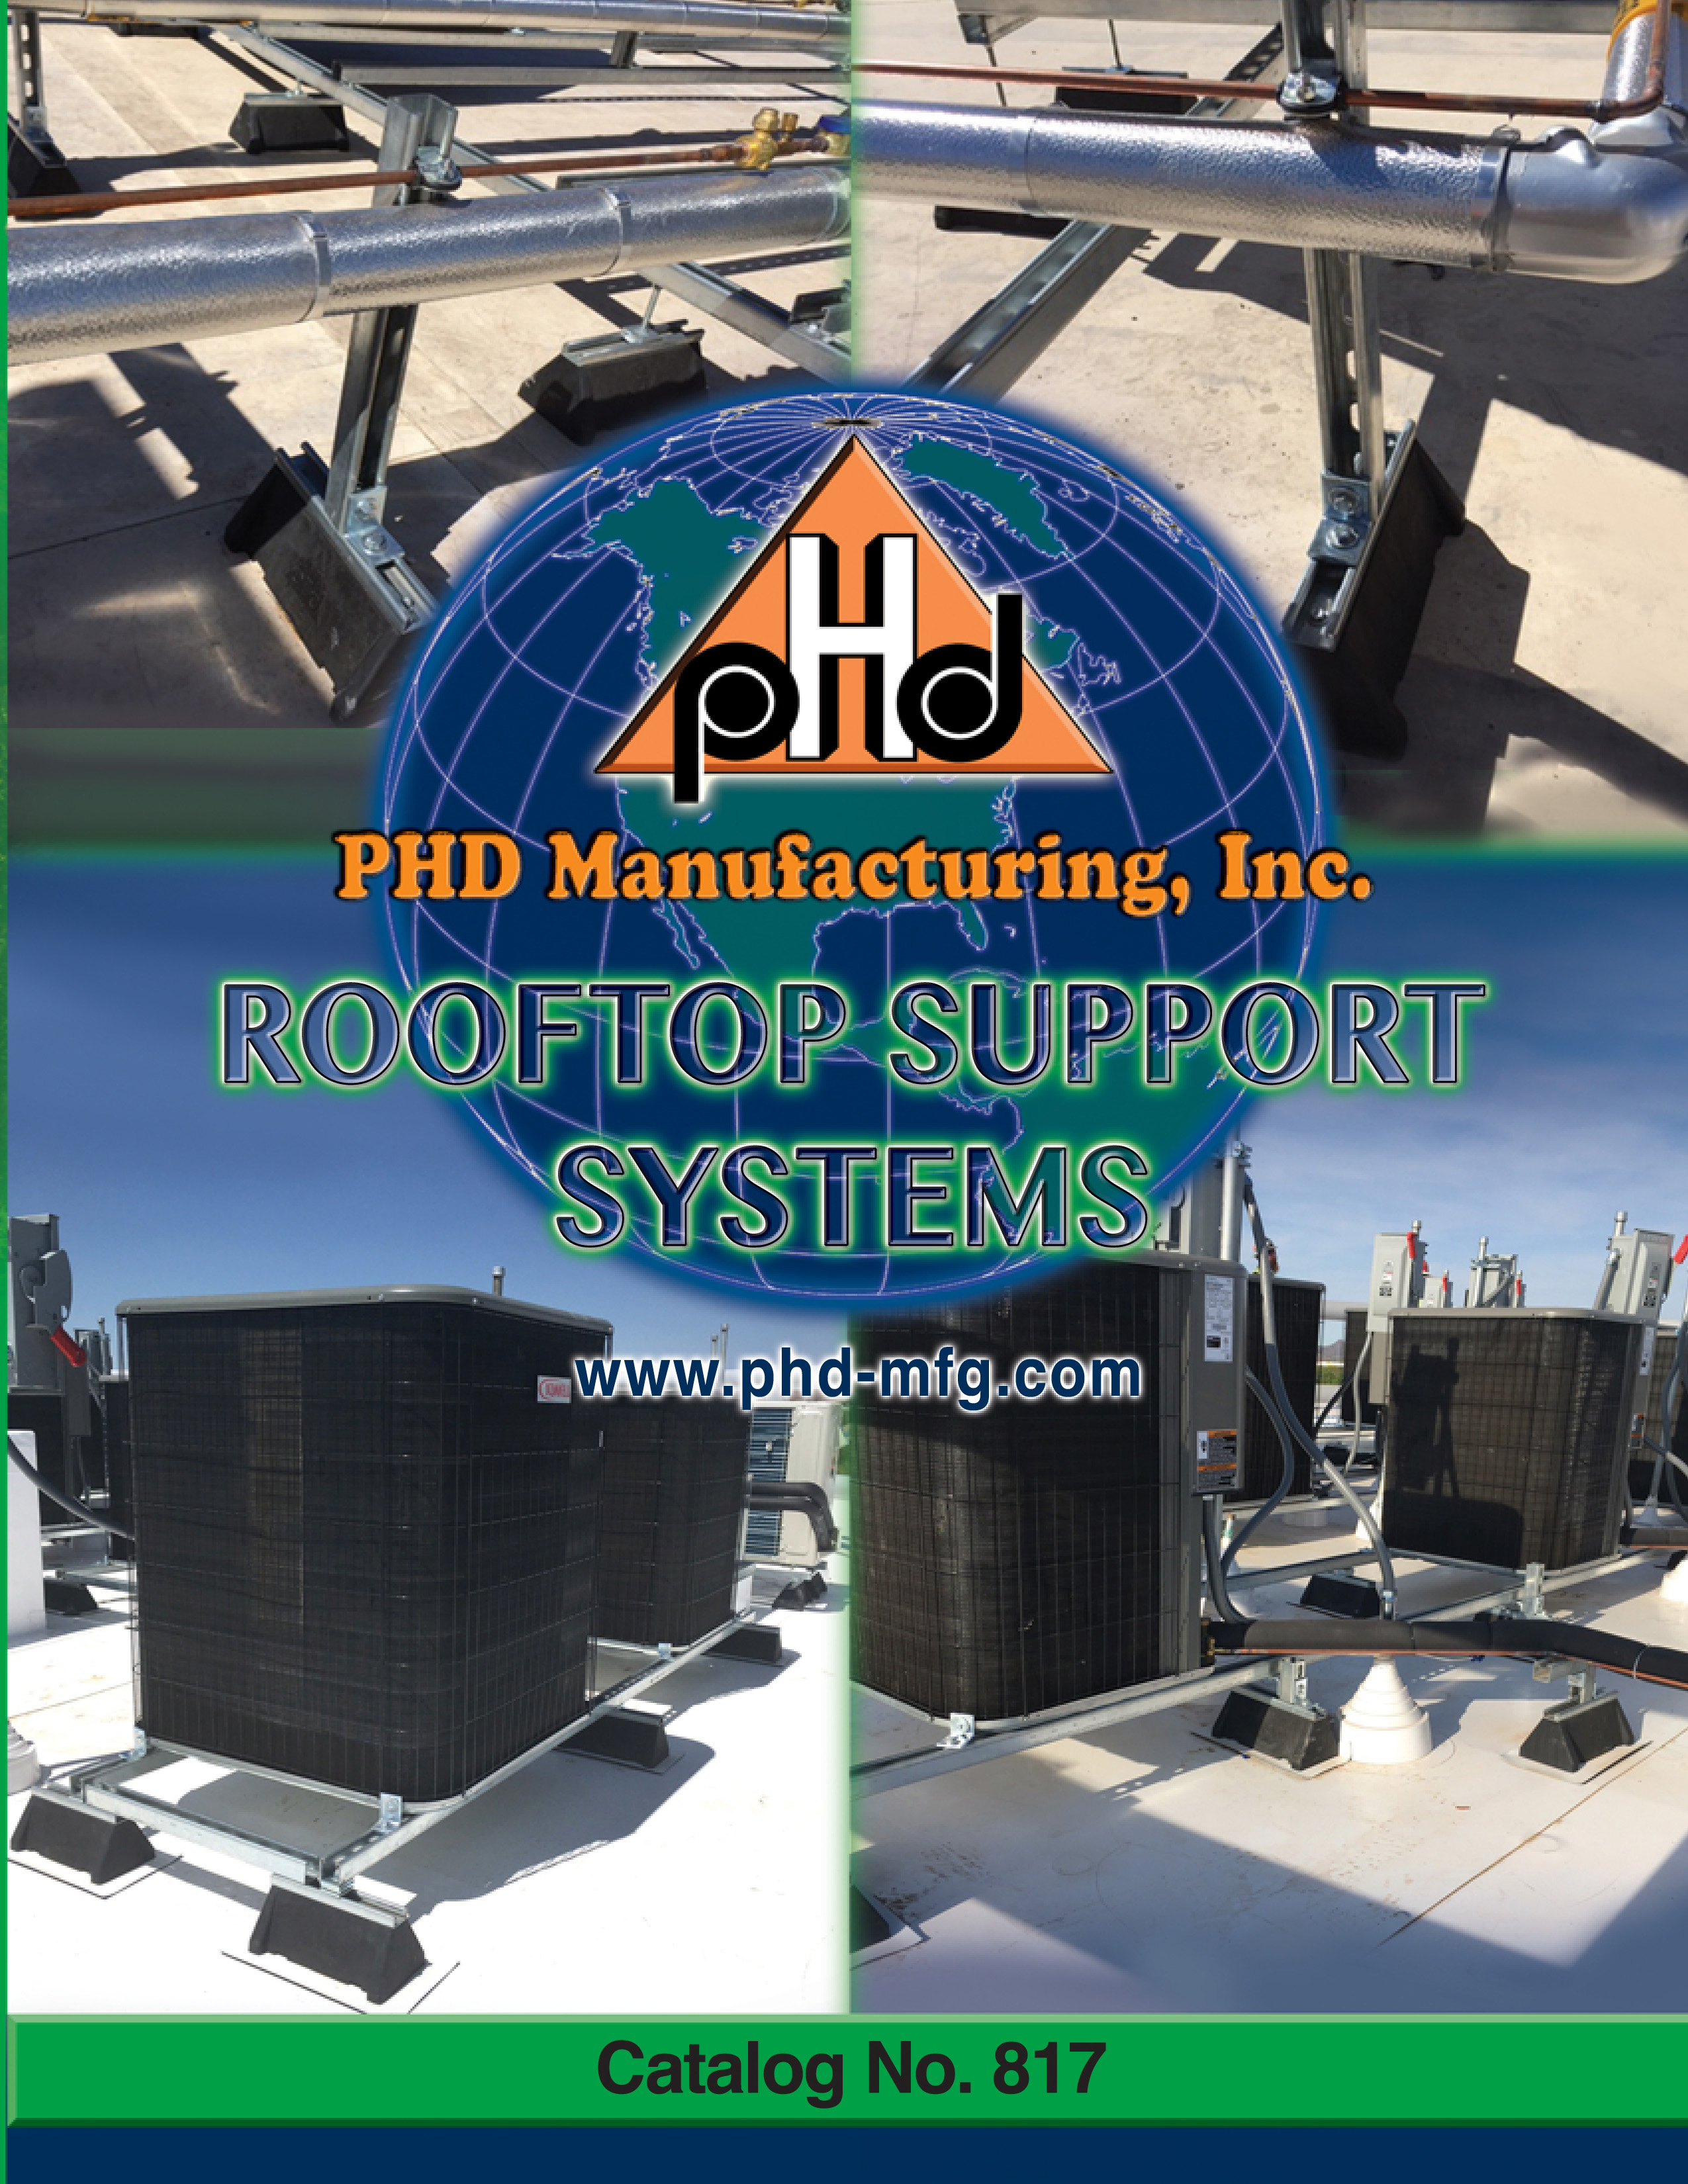 Rooftop Support Base Catalog